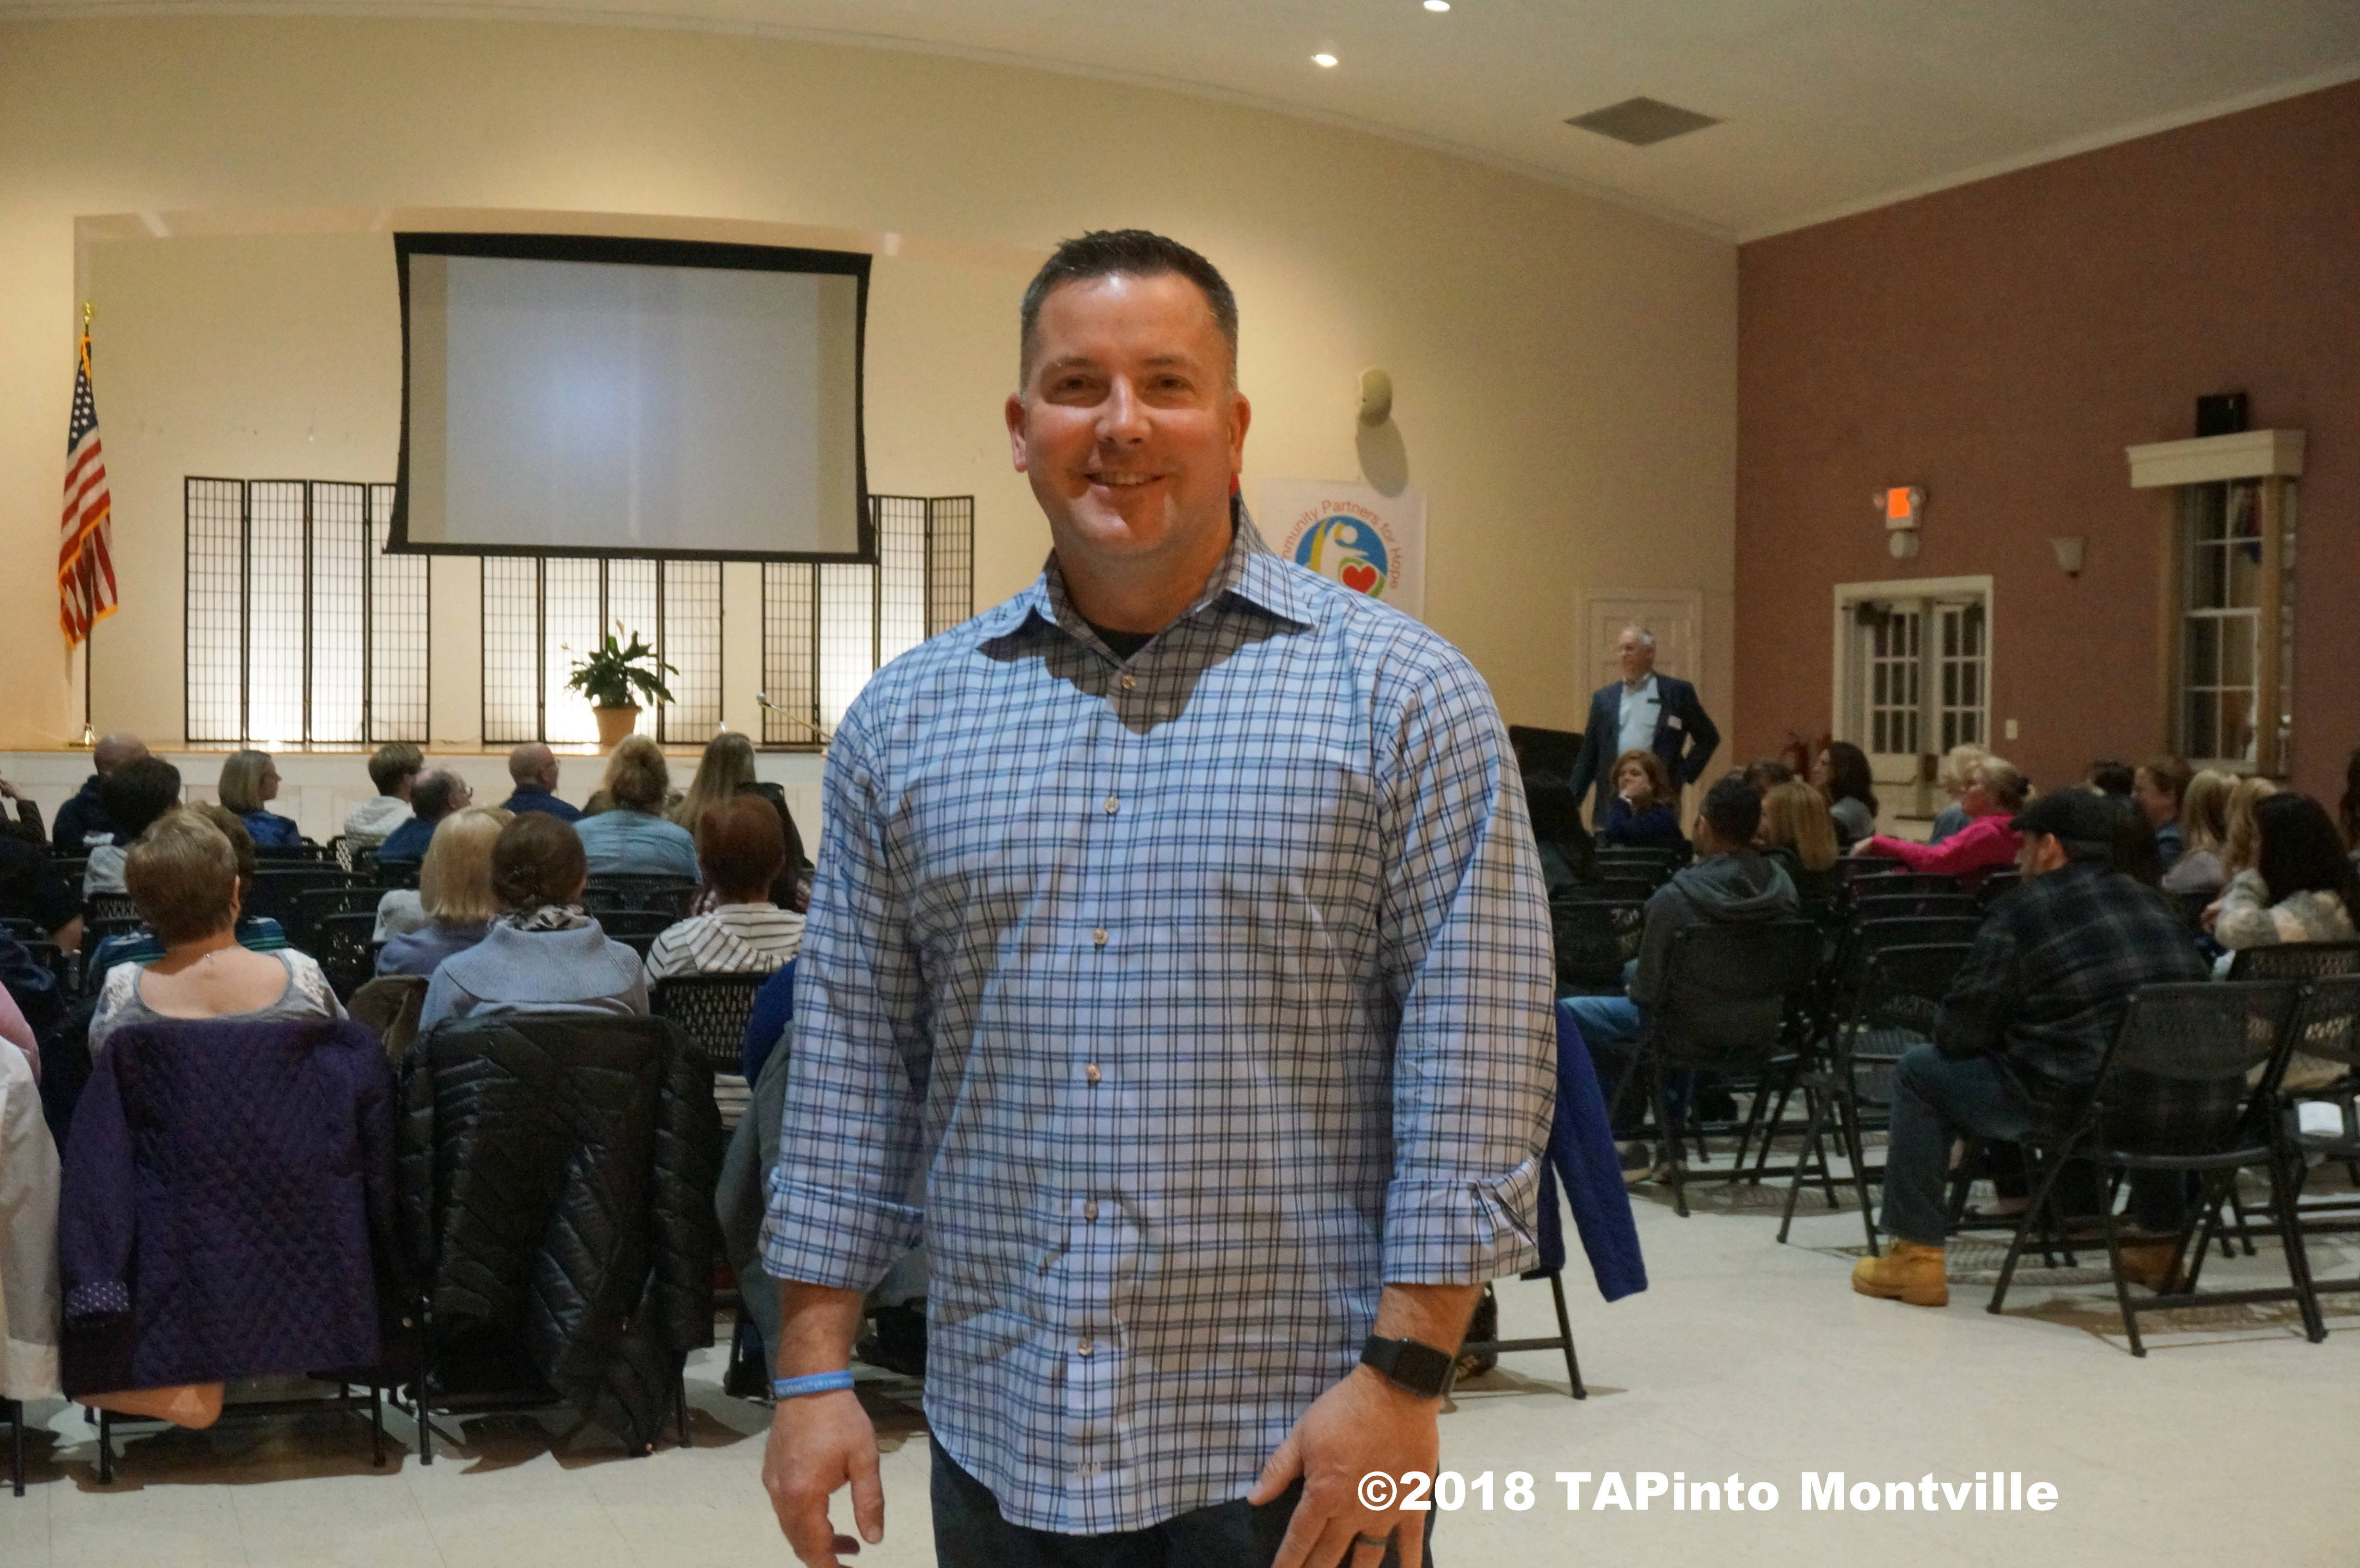 7fedc643efe09f927648_Sgt._Tom_Rich_following_his_seminar_in_Pompton_Plains__2018_TAPinto_Montville.JPG